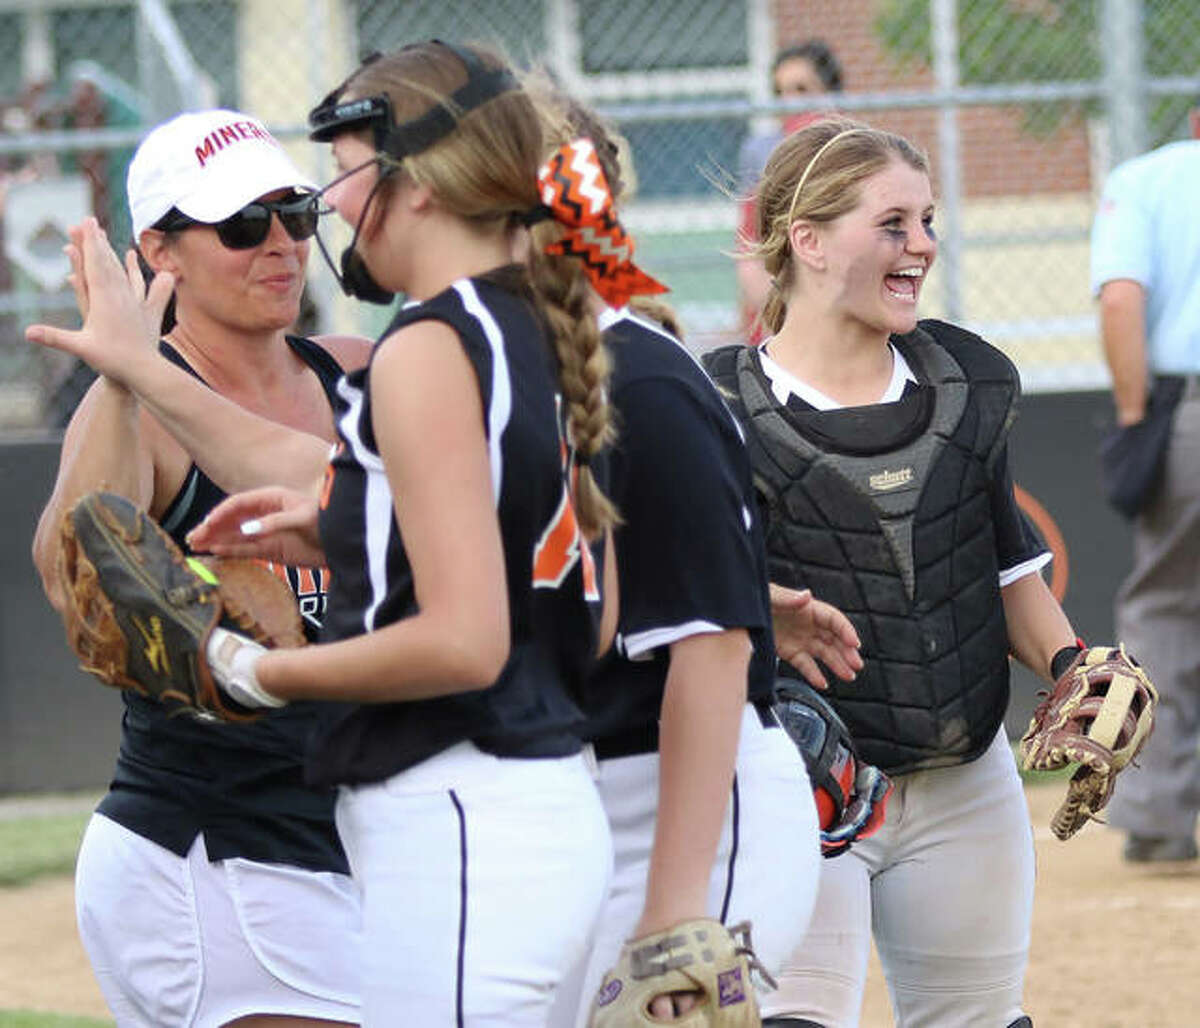 Gillespie catcher Hannah Barrett (right) waits for pitcher Sydney Bires to join the celebration while Miners coach Michelle Smith welcomes players off the field after a 4-1 win over Southwestern on Monday in Gillespie.